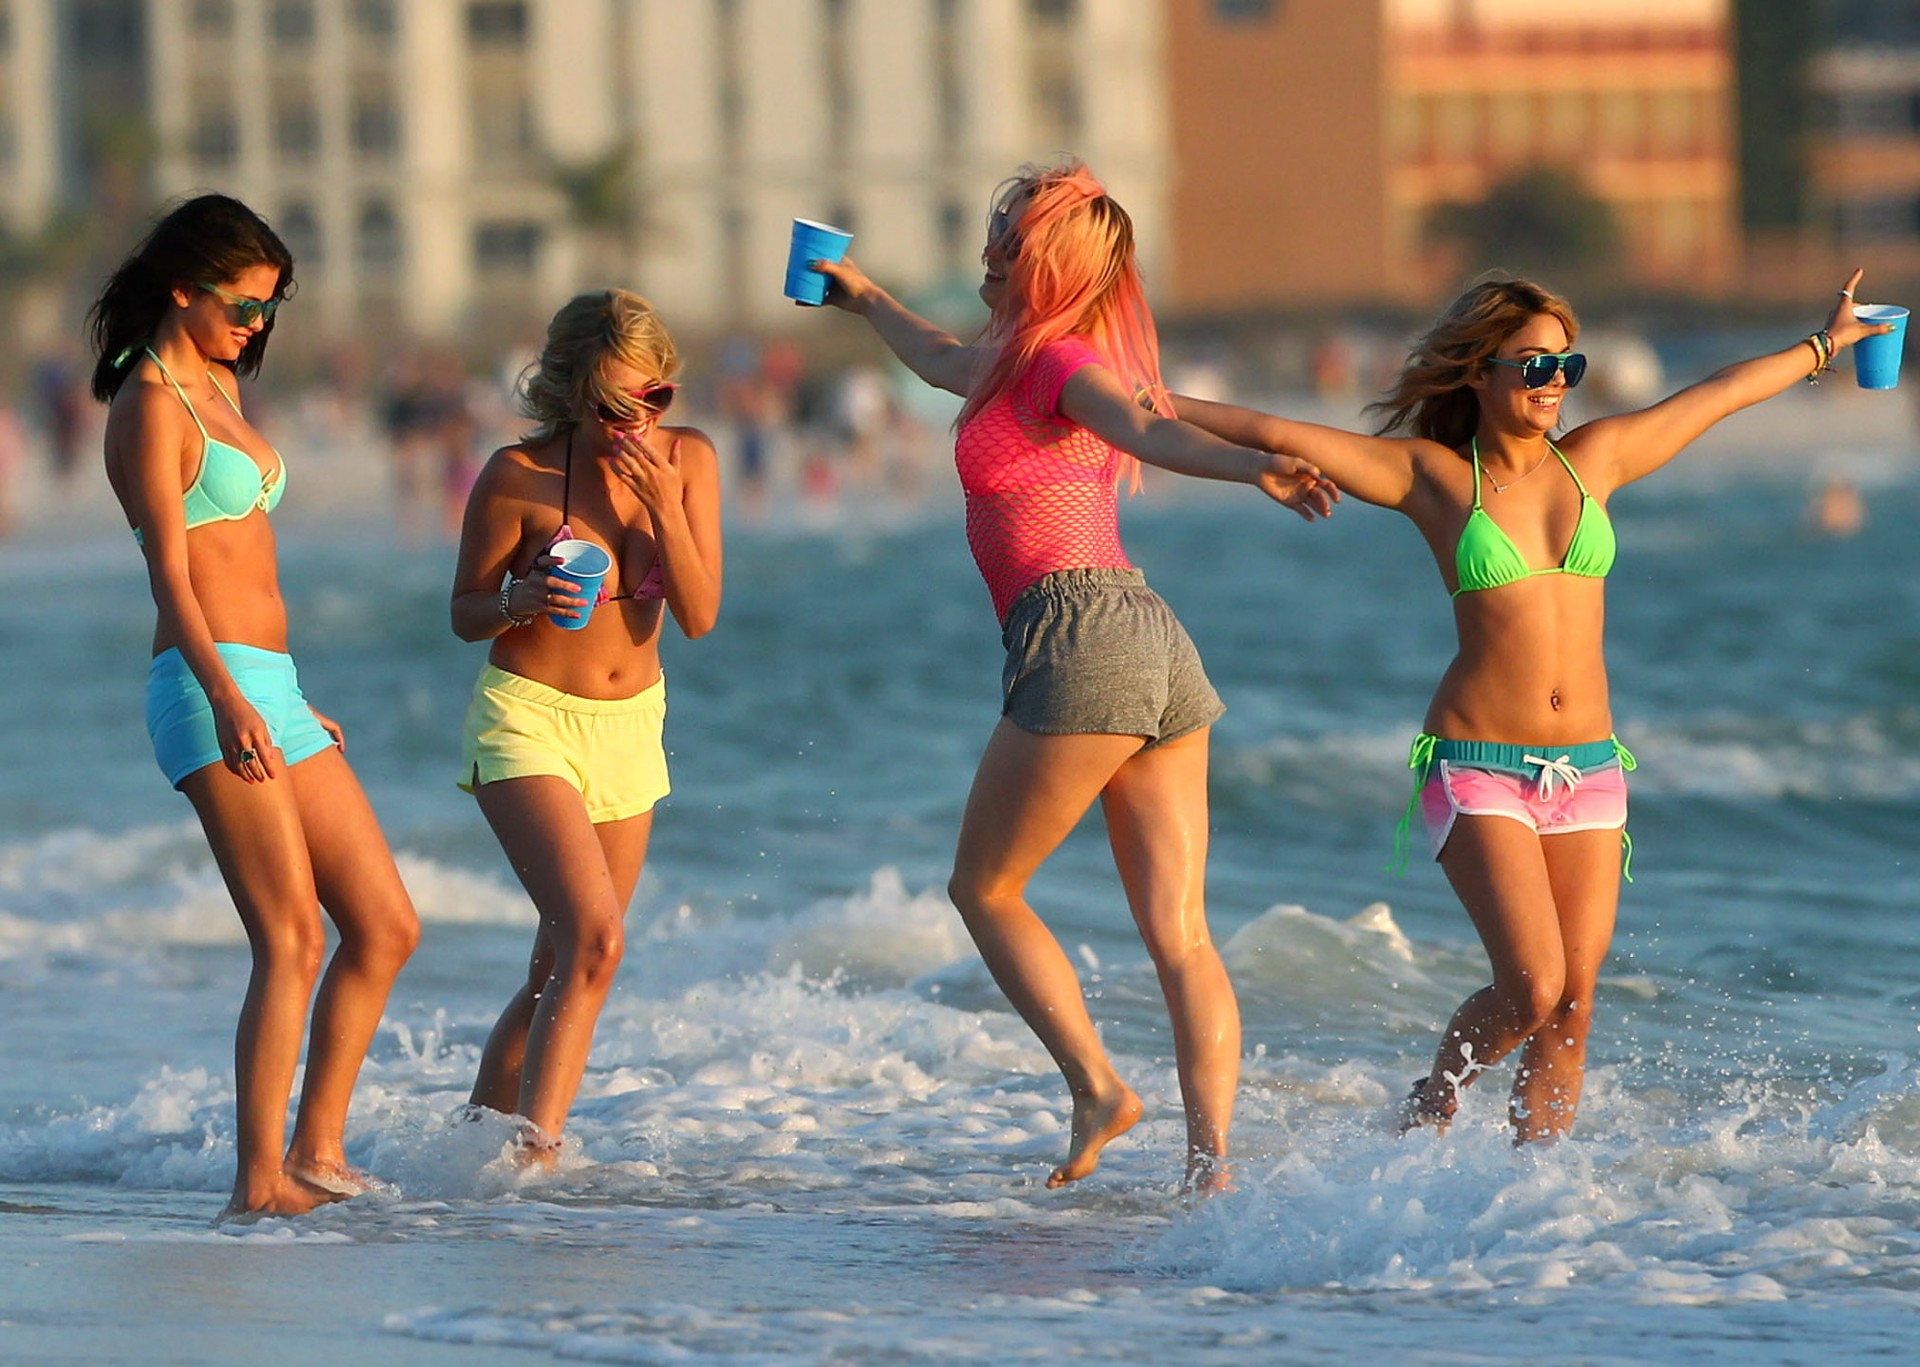 spring-breakers-photos-4f6c69668731c1